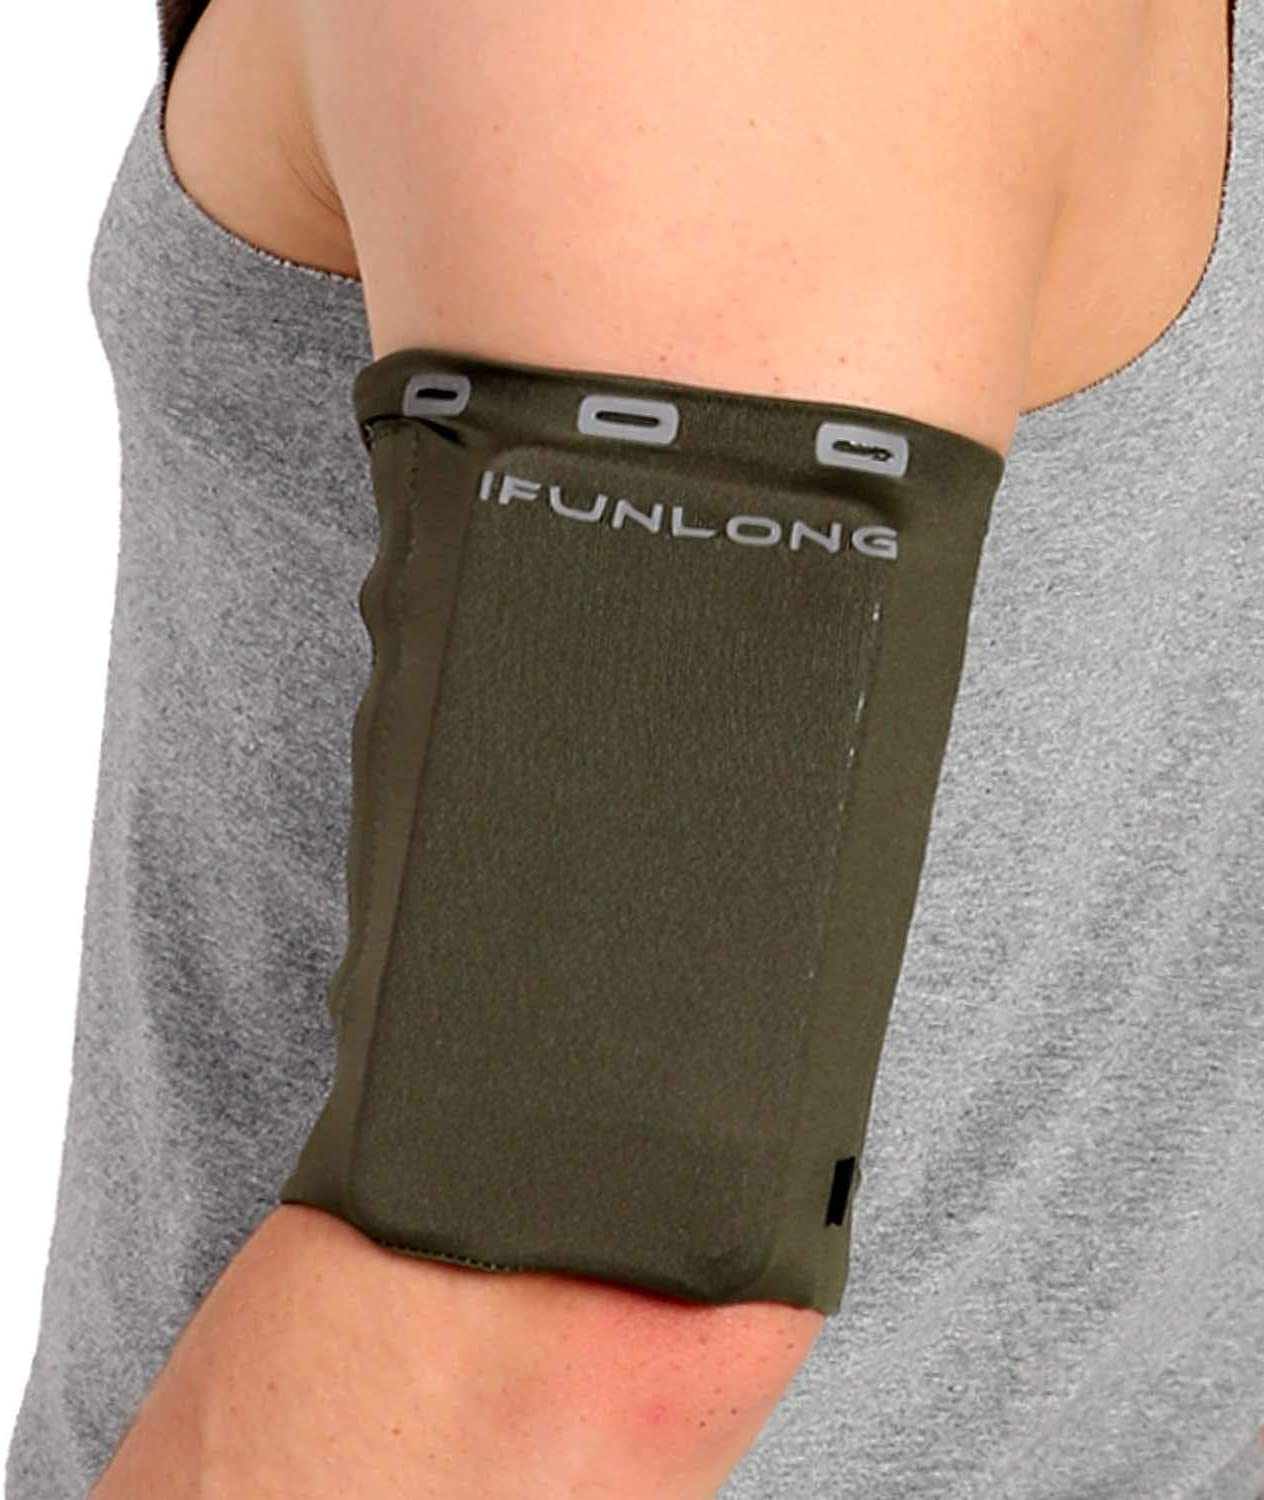 iFunLong Armband for Cell Phone Running   Exercise Working Out Sports Arm Band Sleeve Pouch Case Holder Fits iPhone 12 Pro Max Mini 11 X XR XS 8 7 Plus/Samsung LG Android Phones Upto 8 Inches